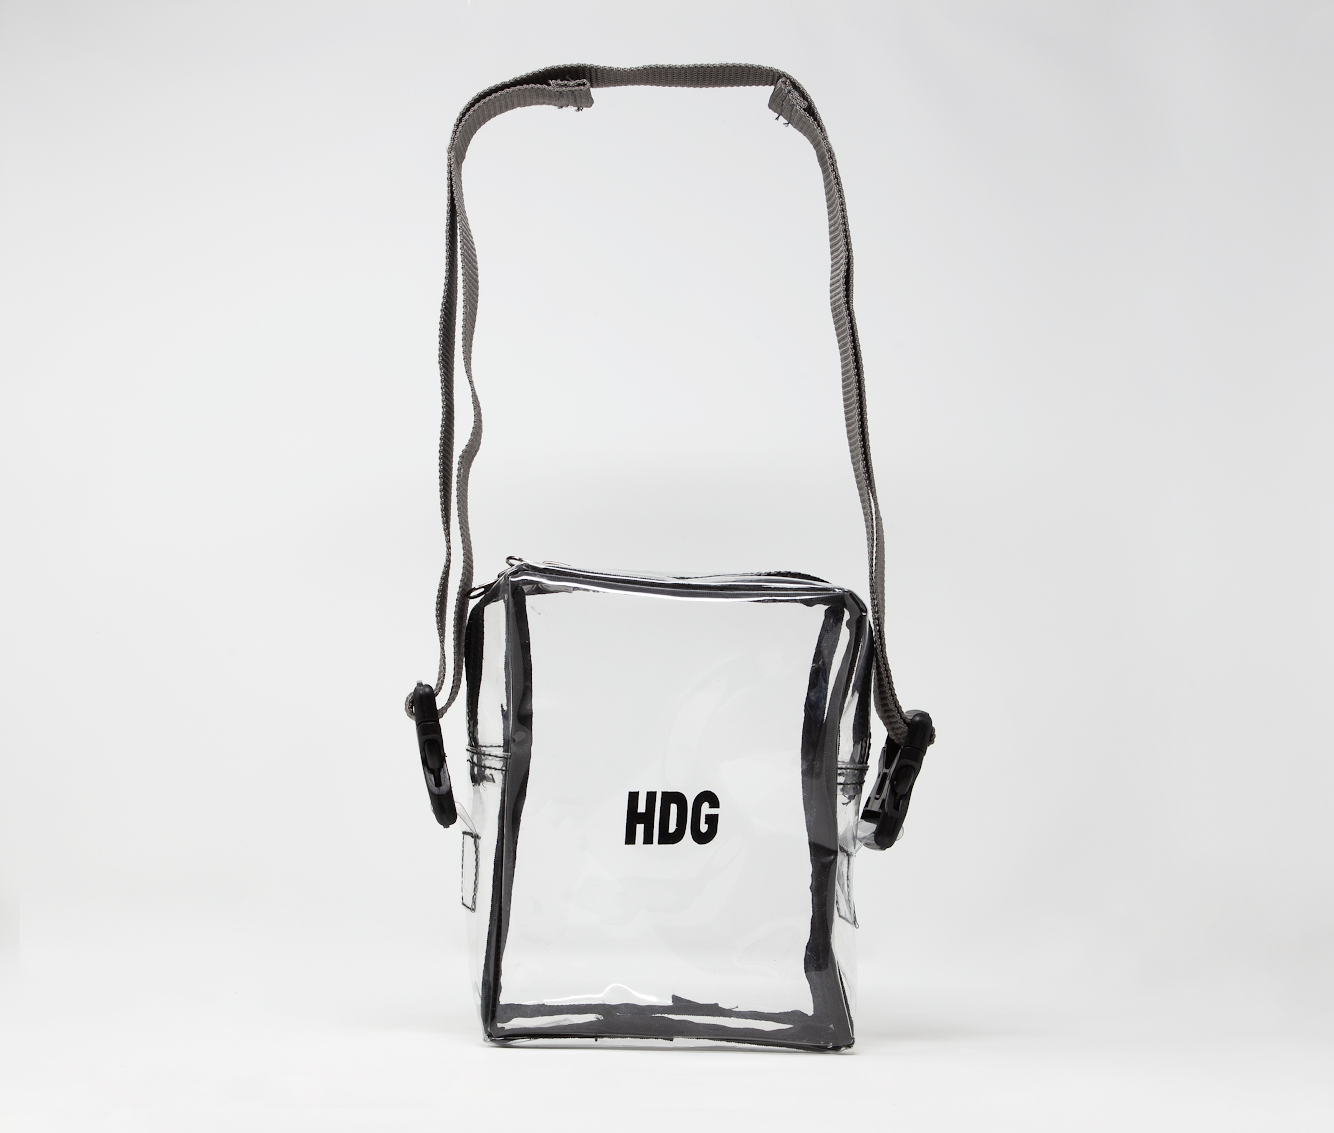 HDG PVC Side Bag